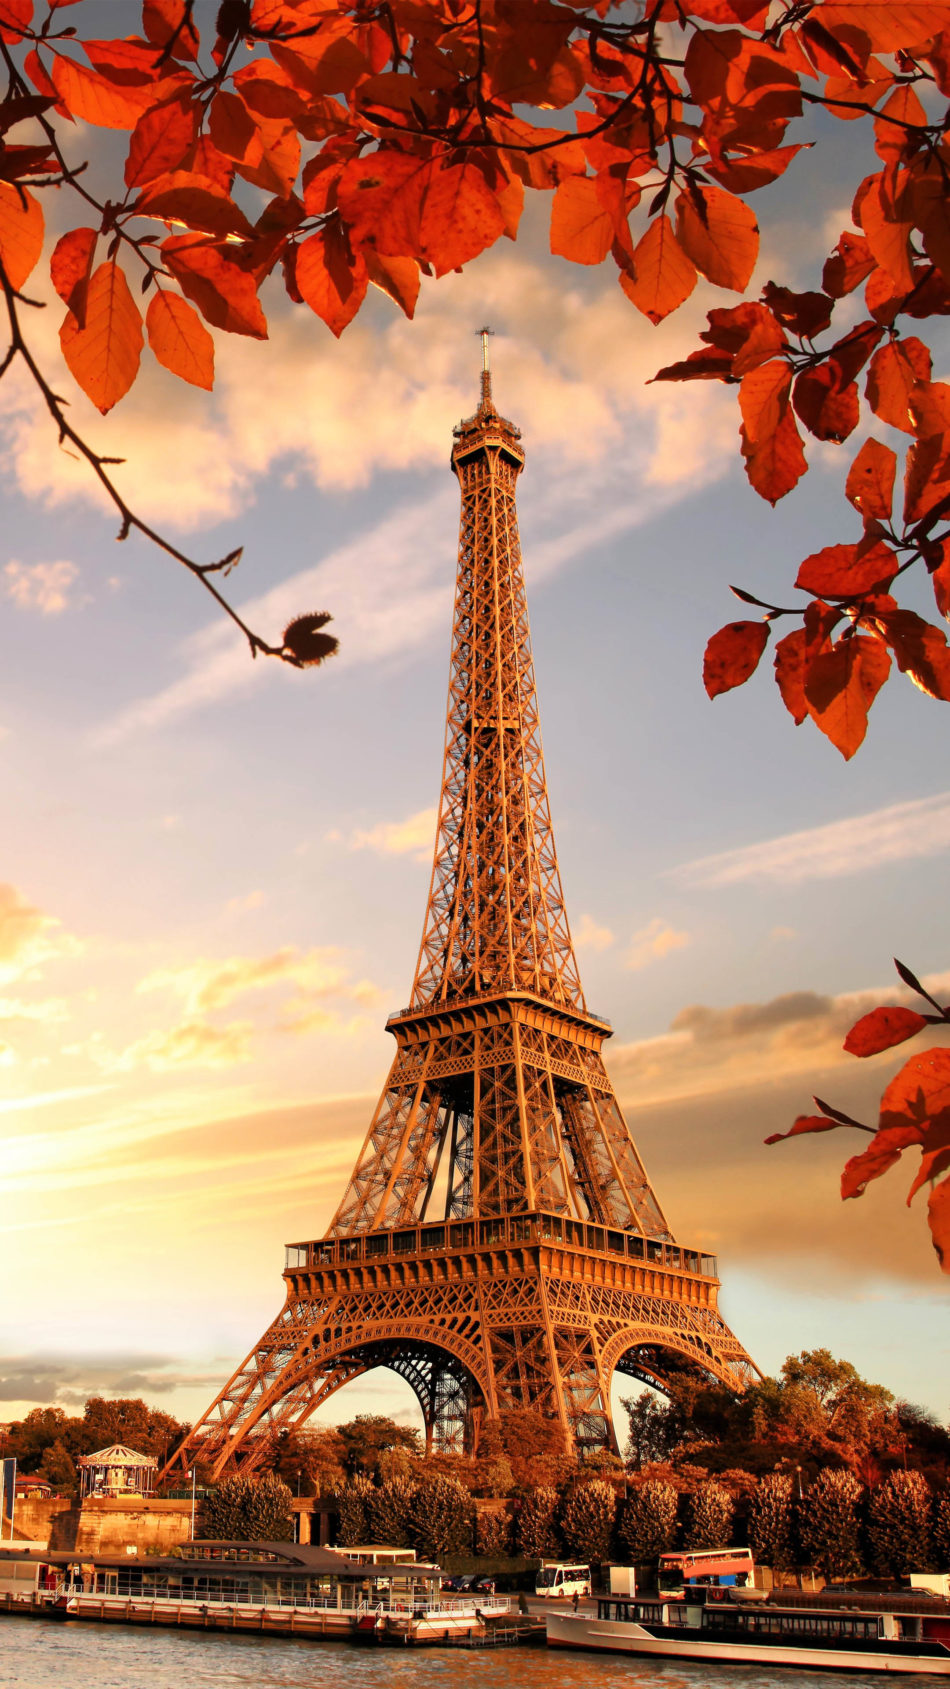 Eiffel Tower Autumn Sunset 4K Ultra HD Mobile Wallpaper